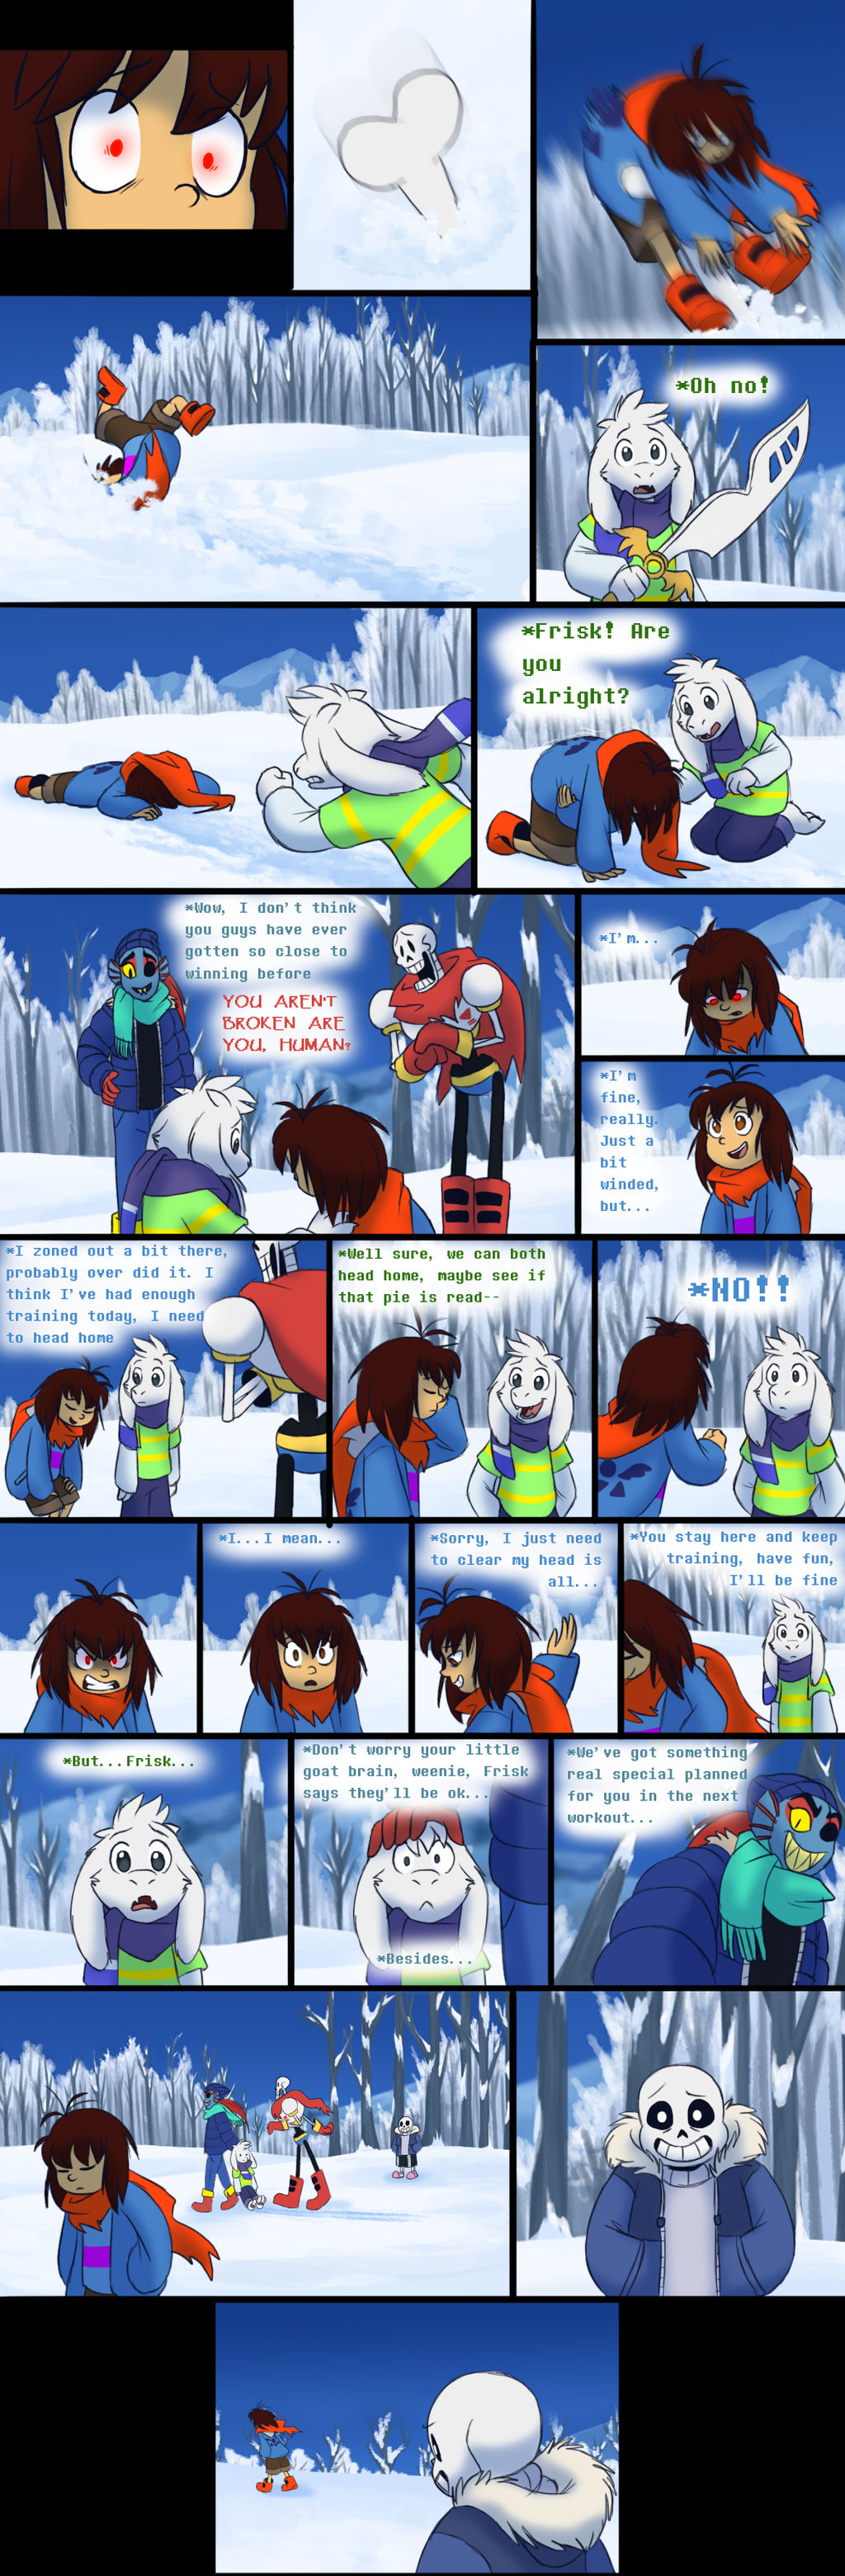 Endertale - Page 7 by TC-96